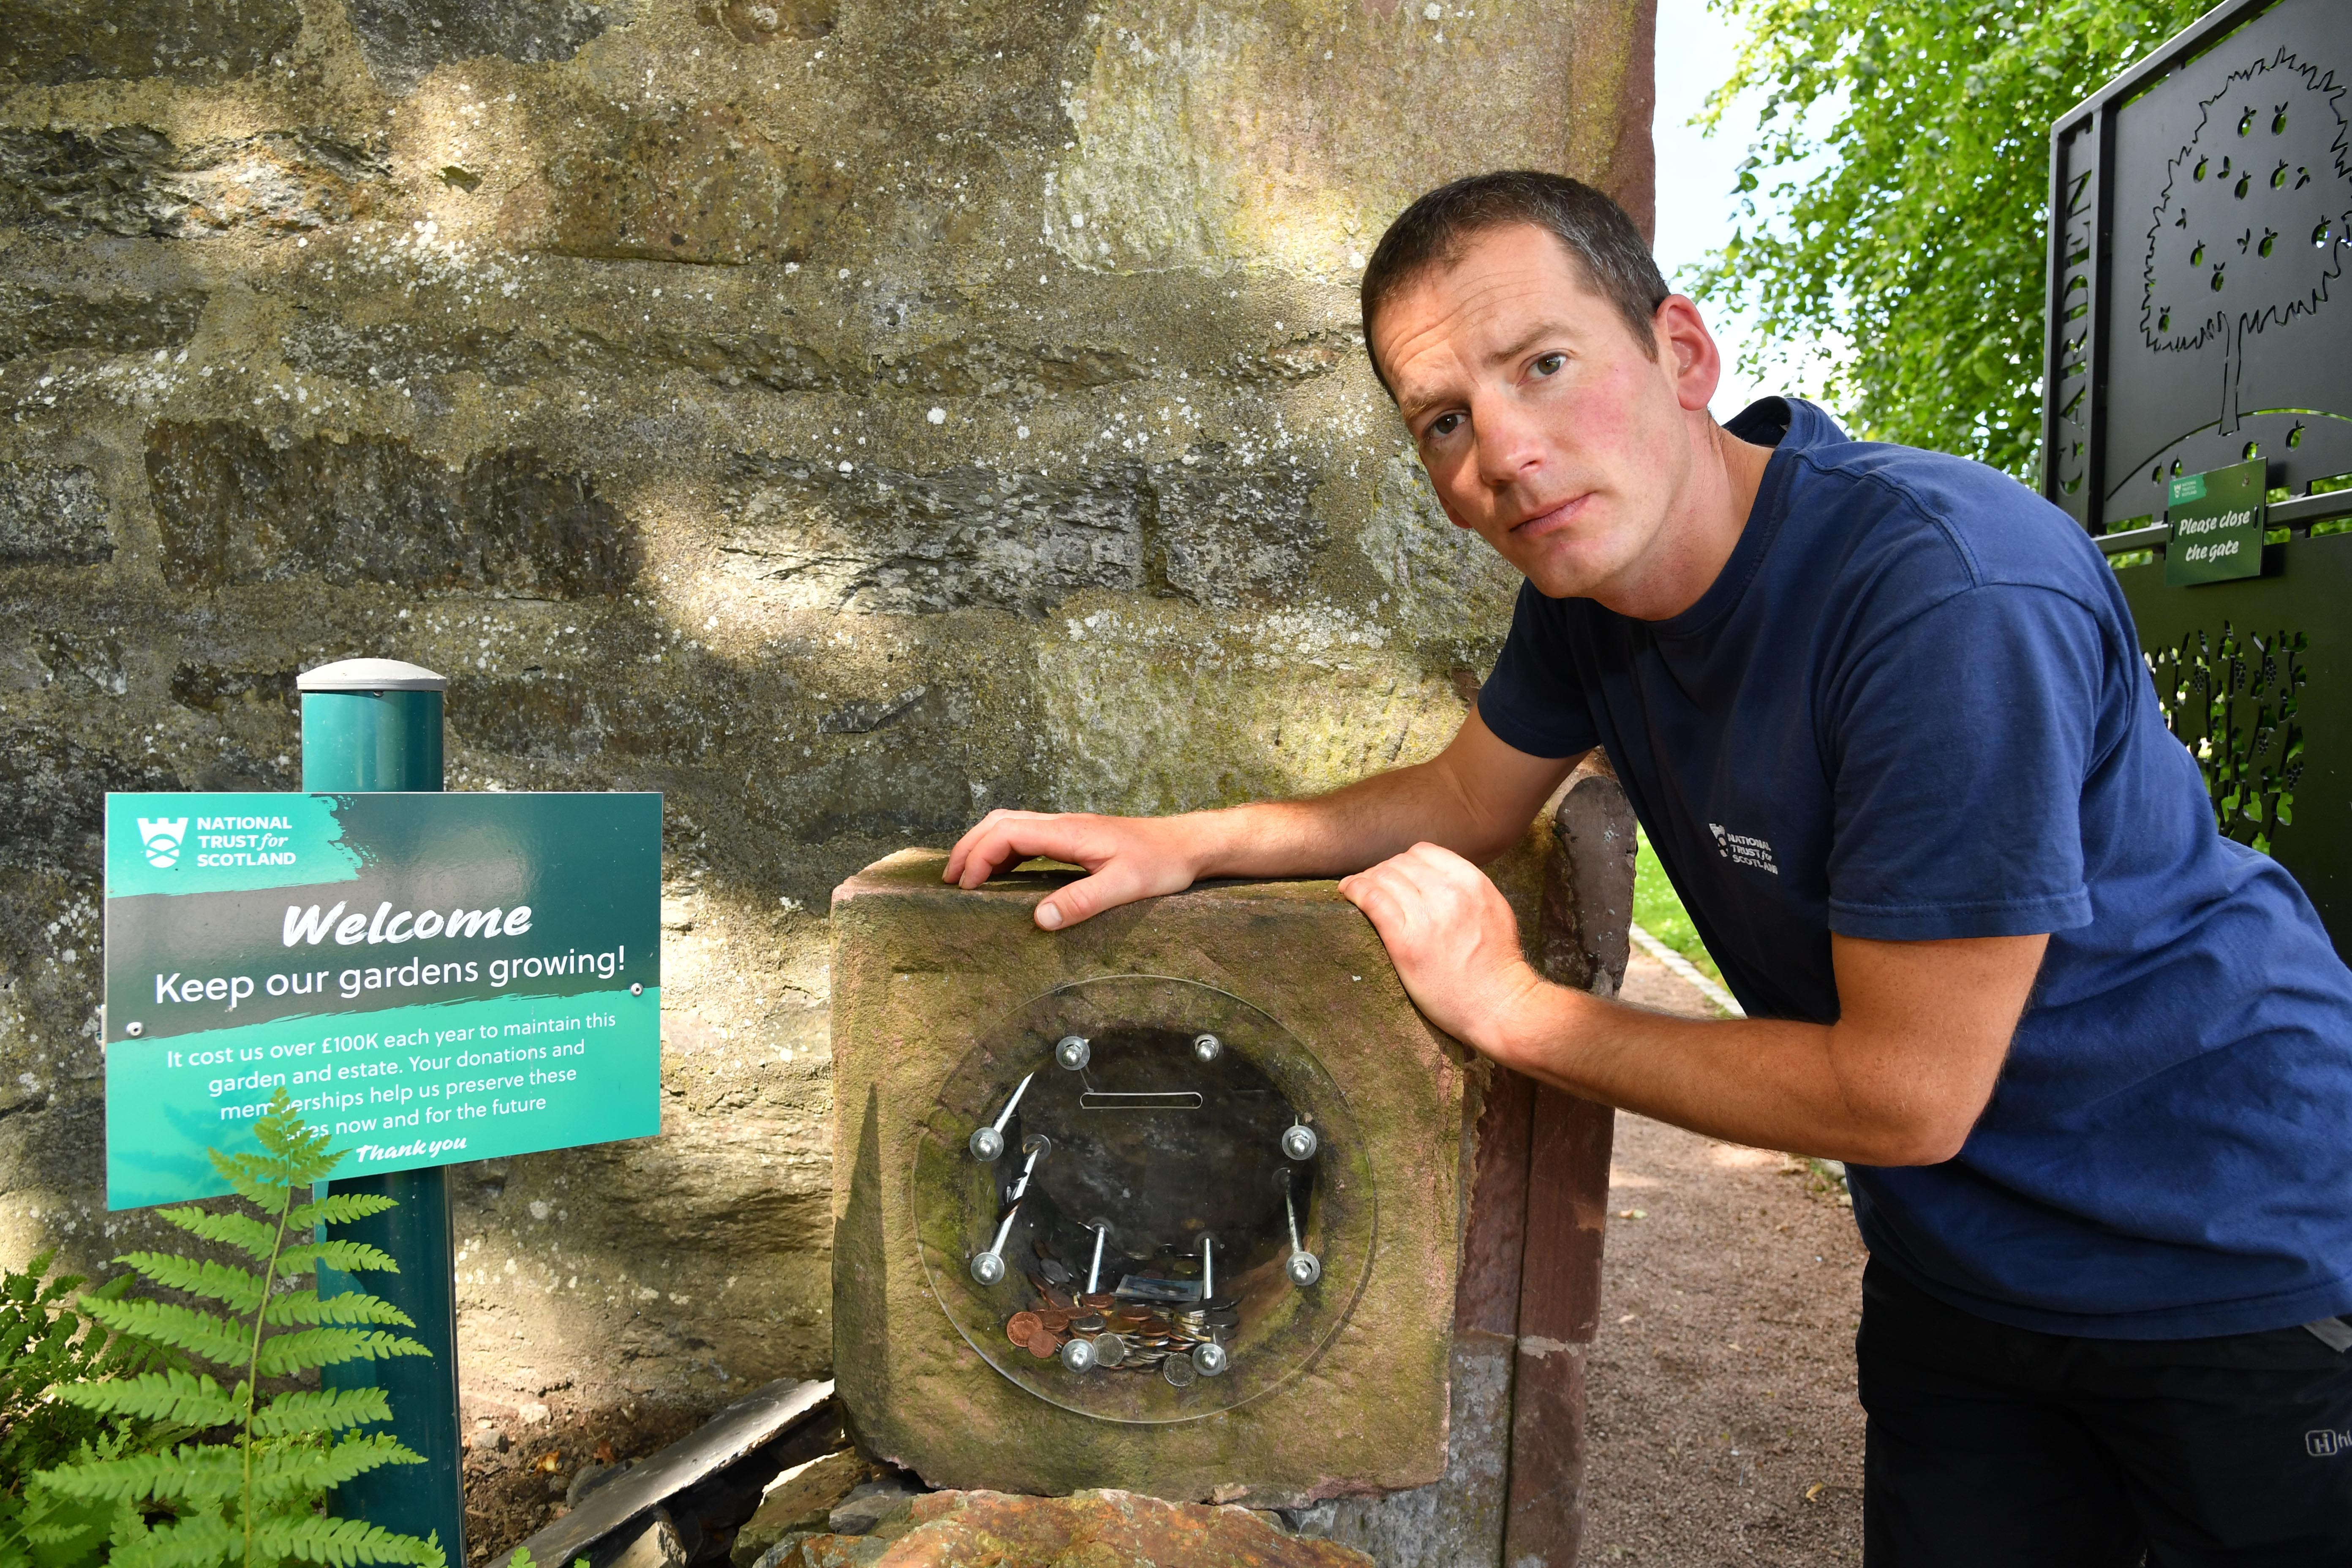 Head gardener Gordon Thomson with the donation box that was targeted.